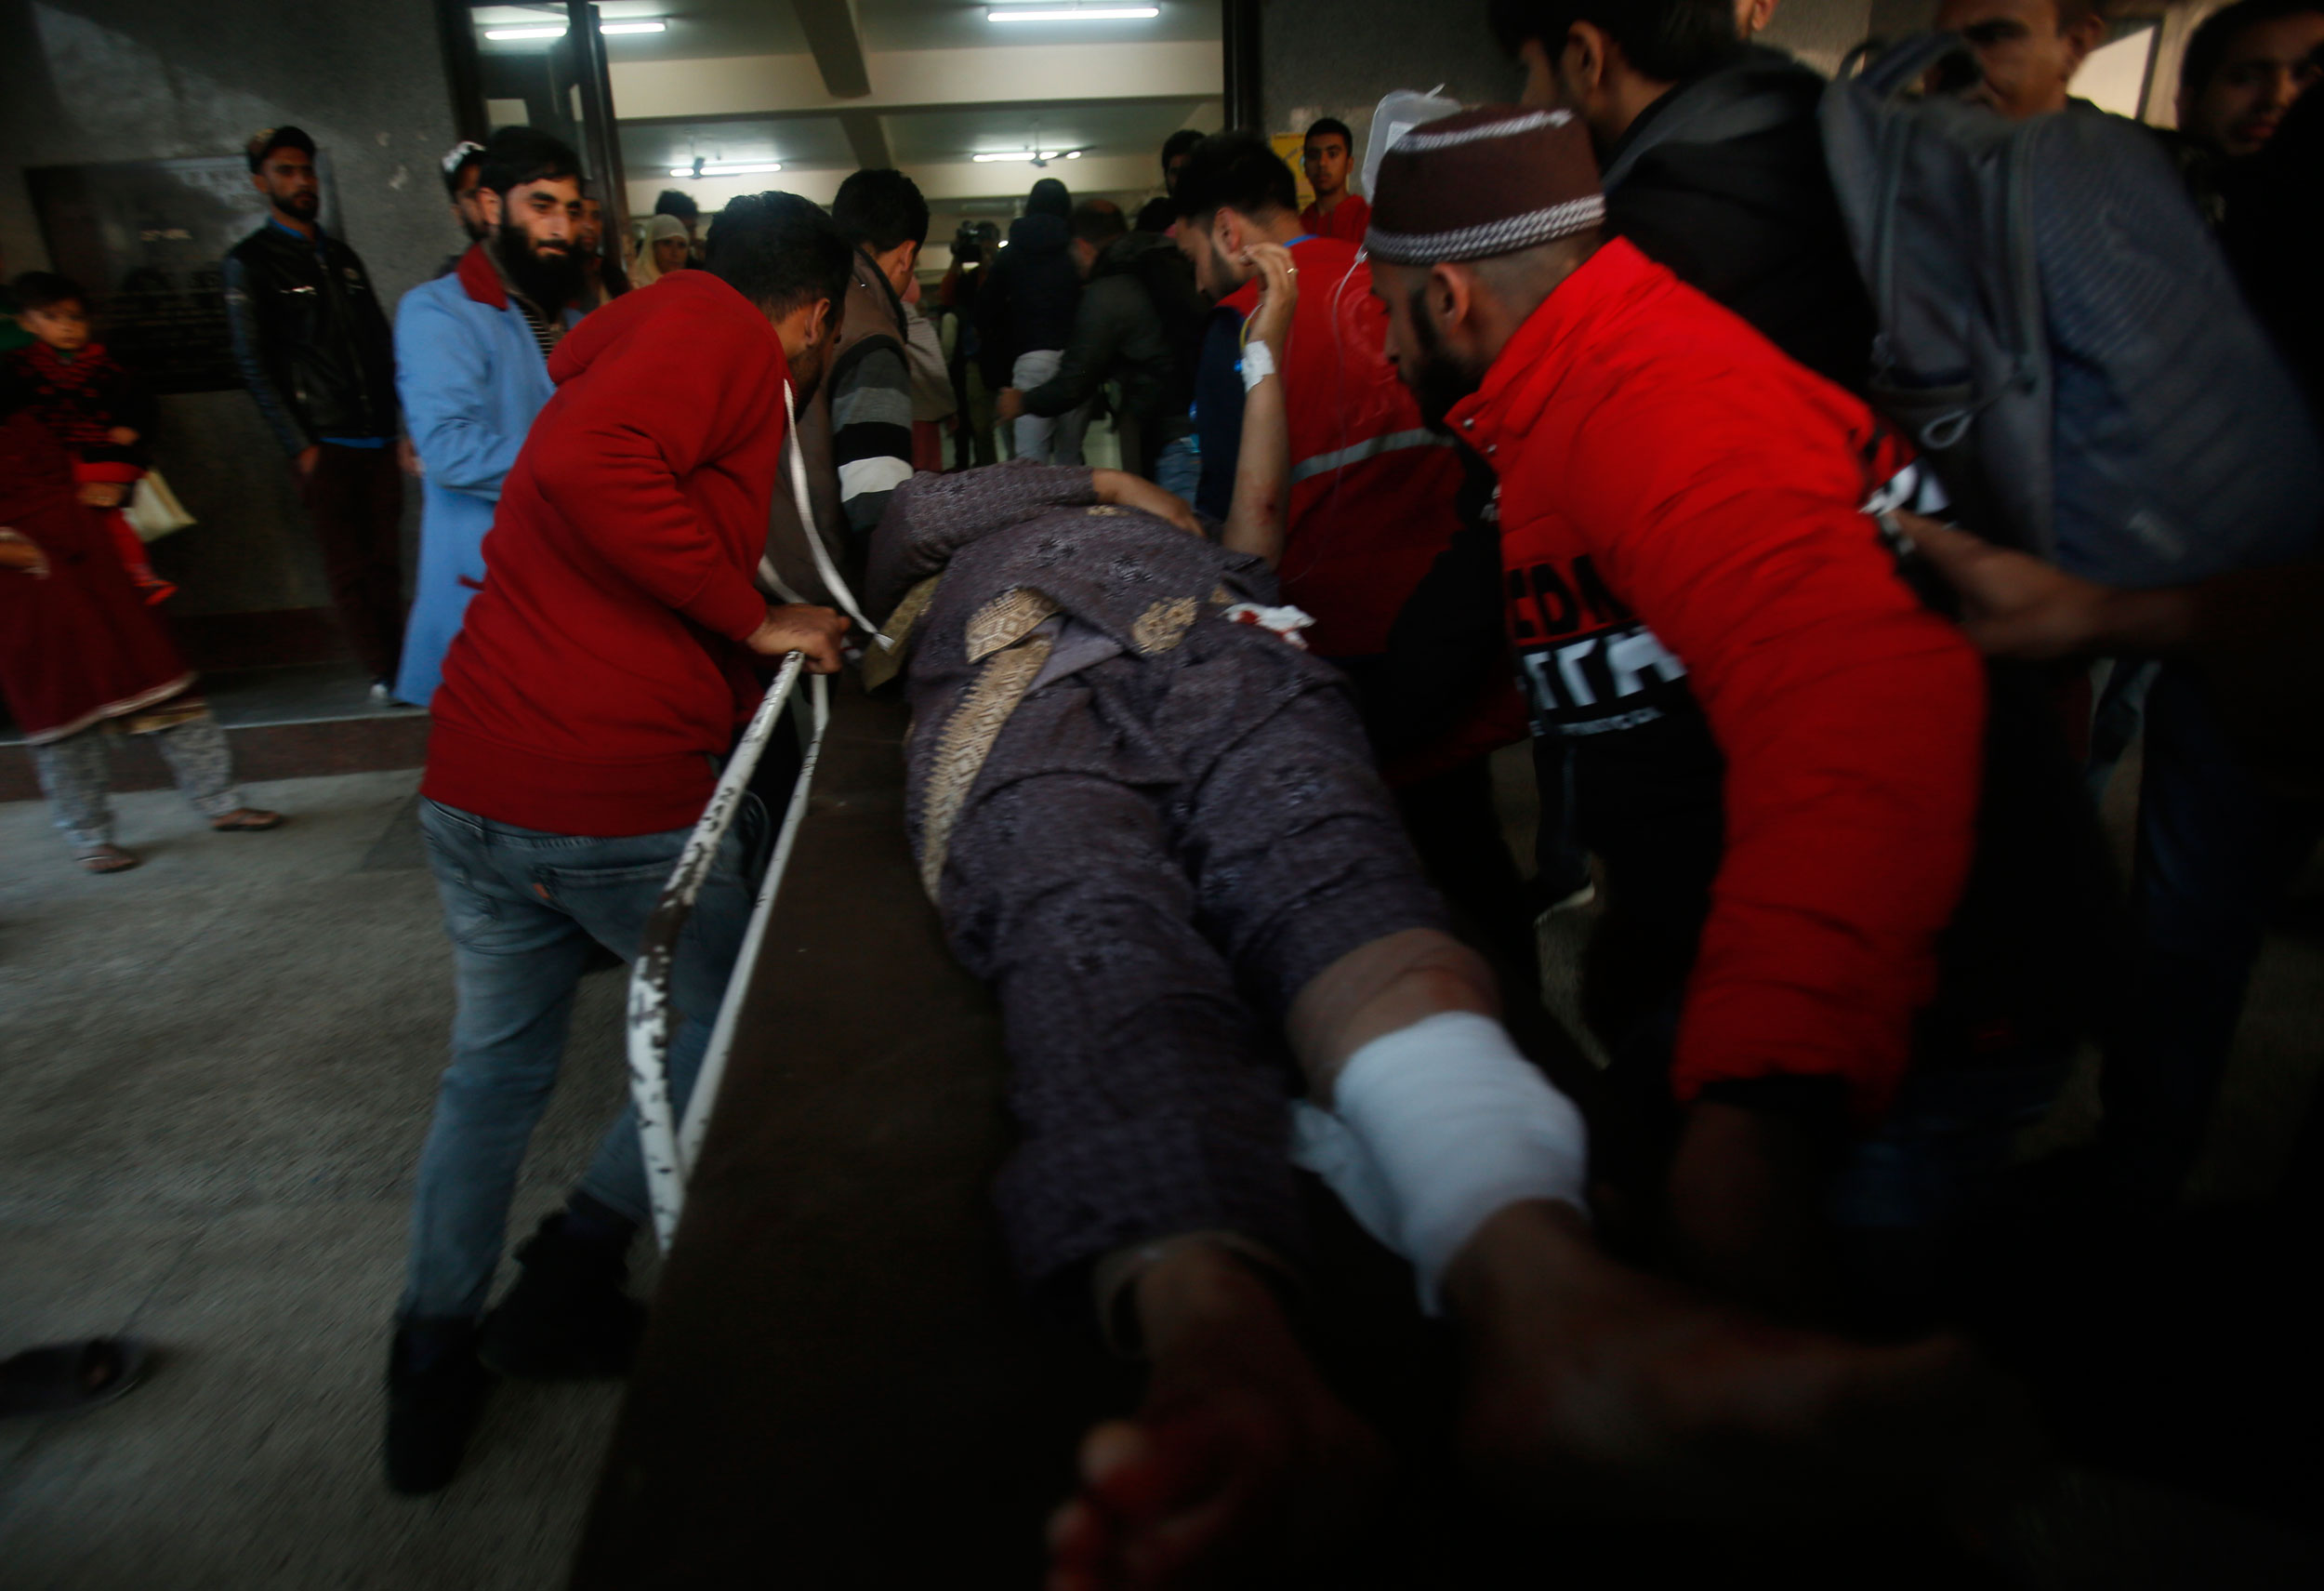 File photo- A Kashmiri woman, who was among those injured in a grenade attack by militants at a busy market in northern Sopore town, is brought for treatment at a hospital in Srinagar, on Monday, October 28, 2019.